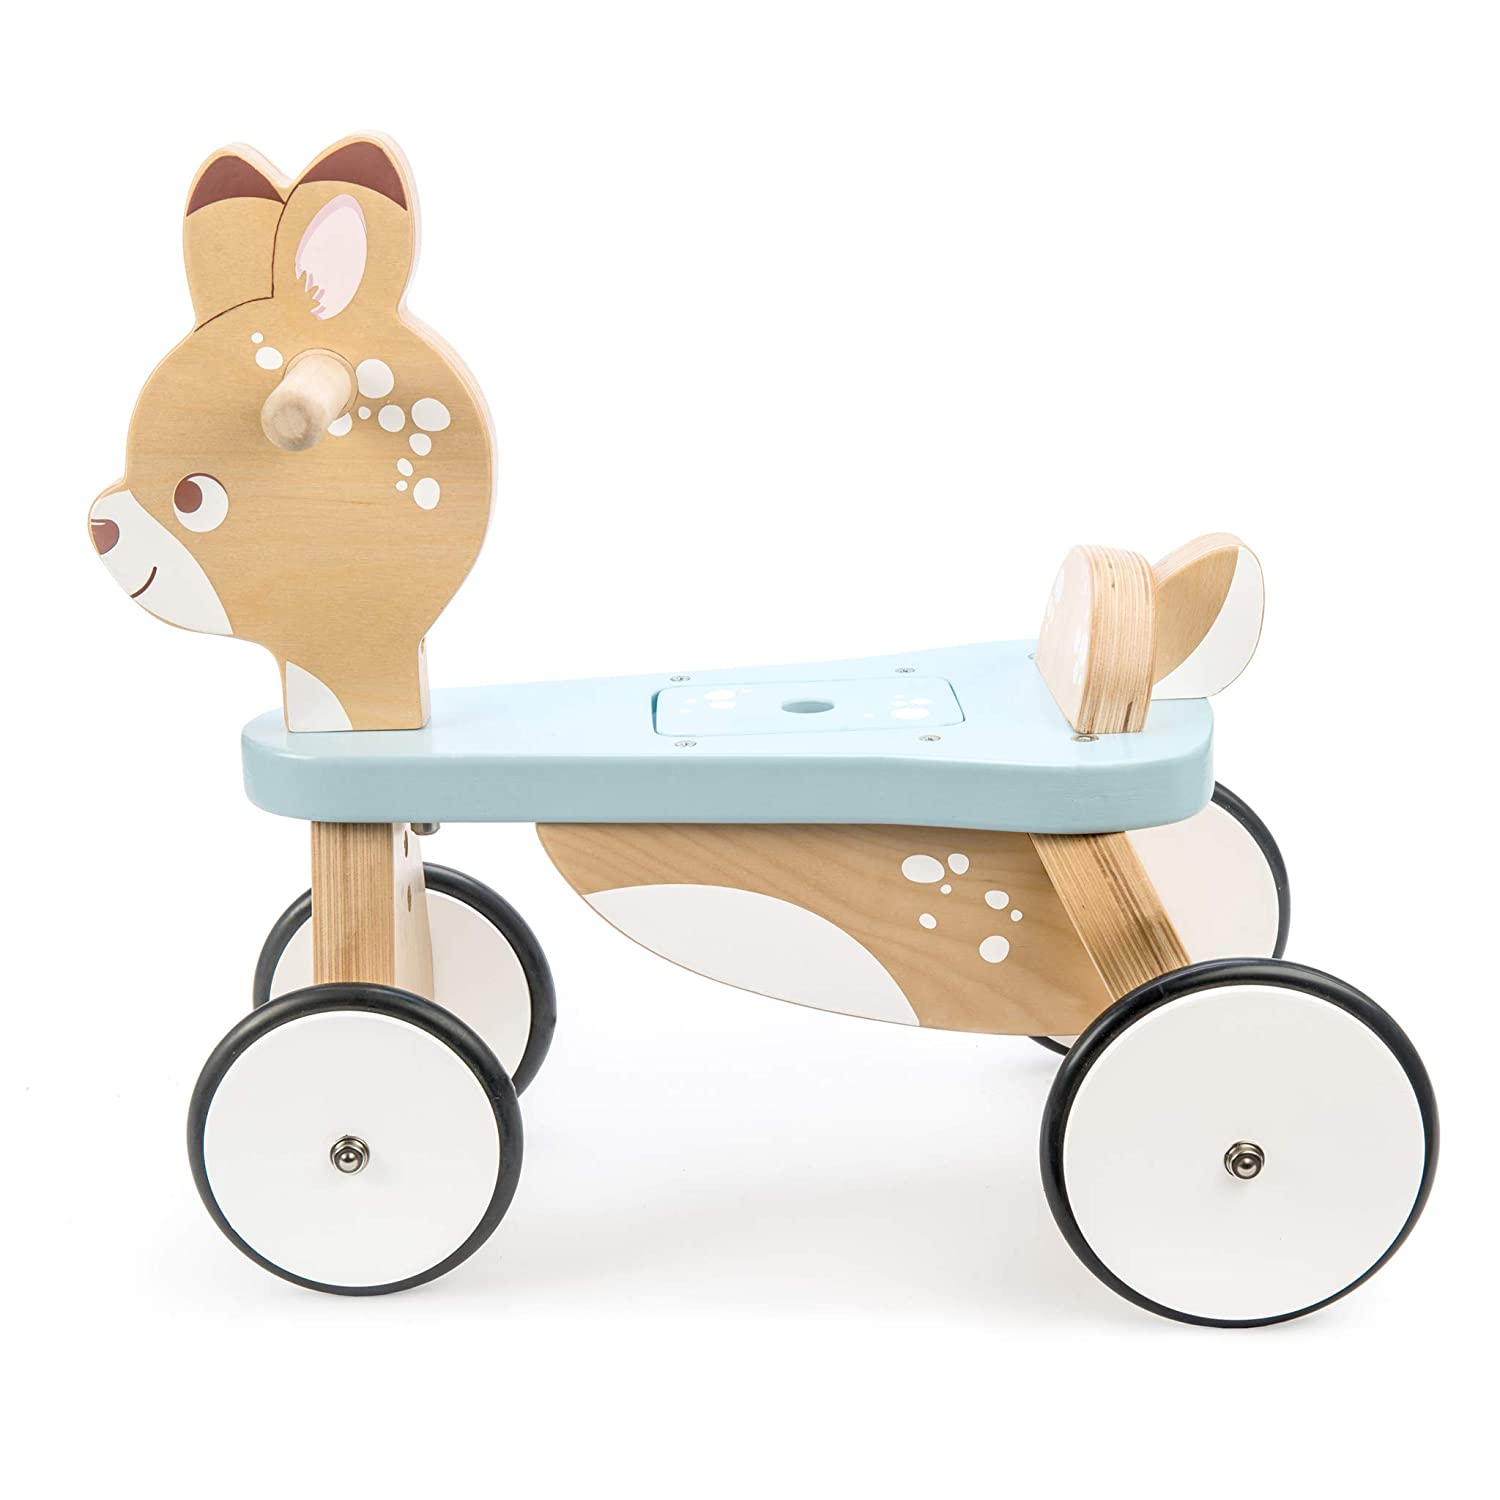 Le Toy Van Petilou Collection Wooden Ride on Deer Premium Wooden Toys for Kids Ages 2 Months /& Up